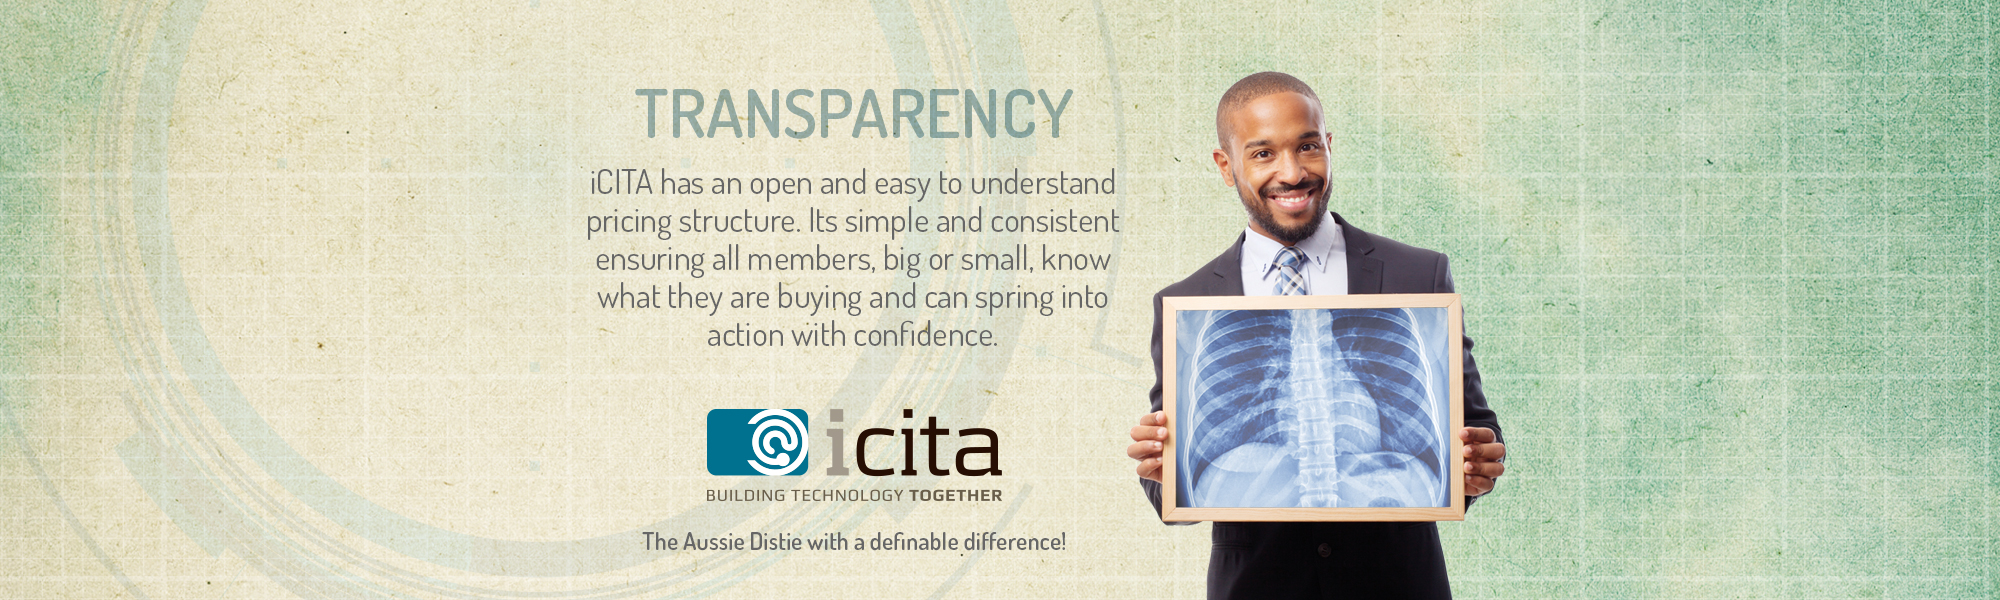 iCITA-DistieDifference-Transparent